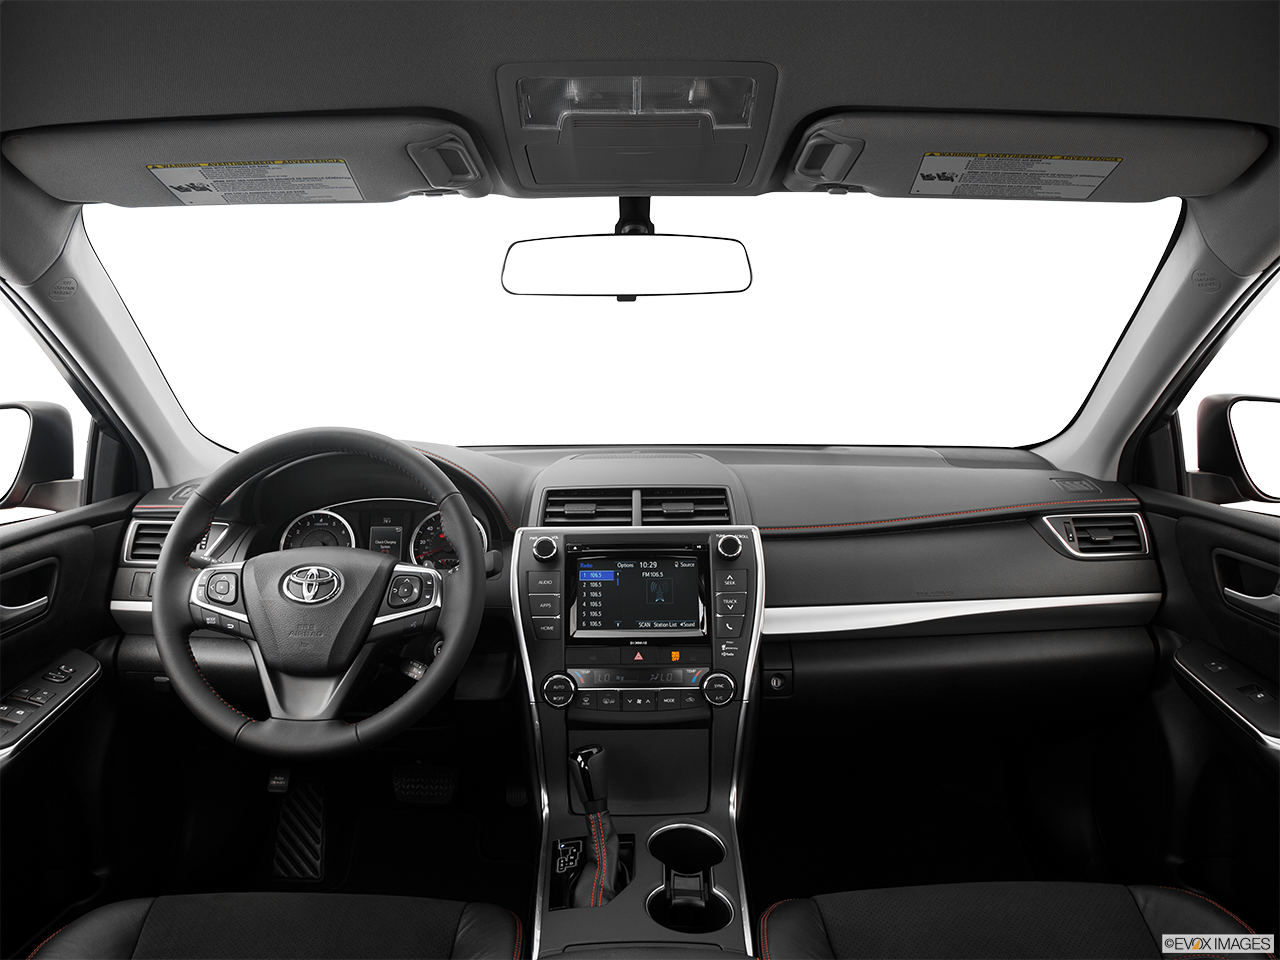 Interior View Of 2017 Toyota Camry near San Diego